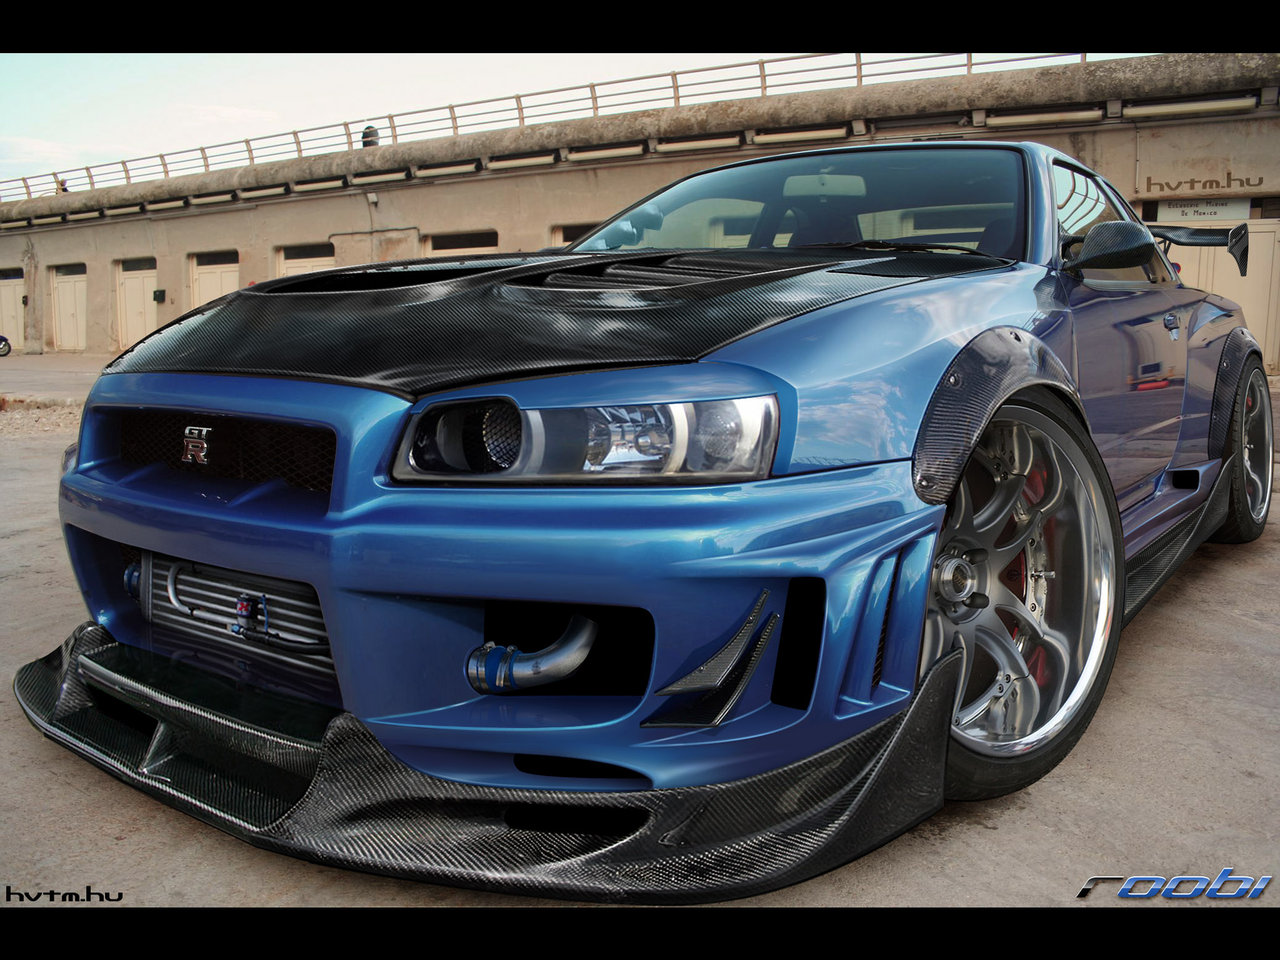 Sexy Moto Nissan Skyline Gtr Pictures And Wallpapers